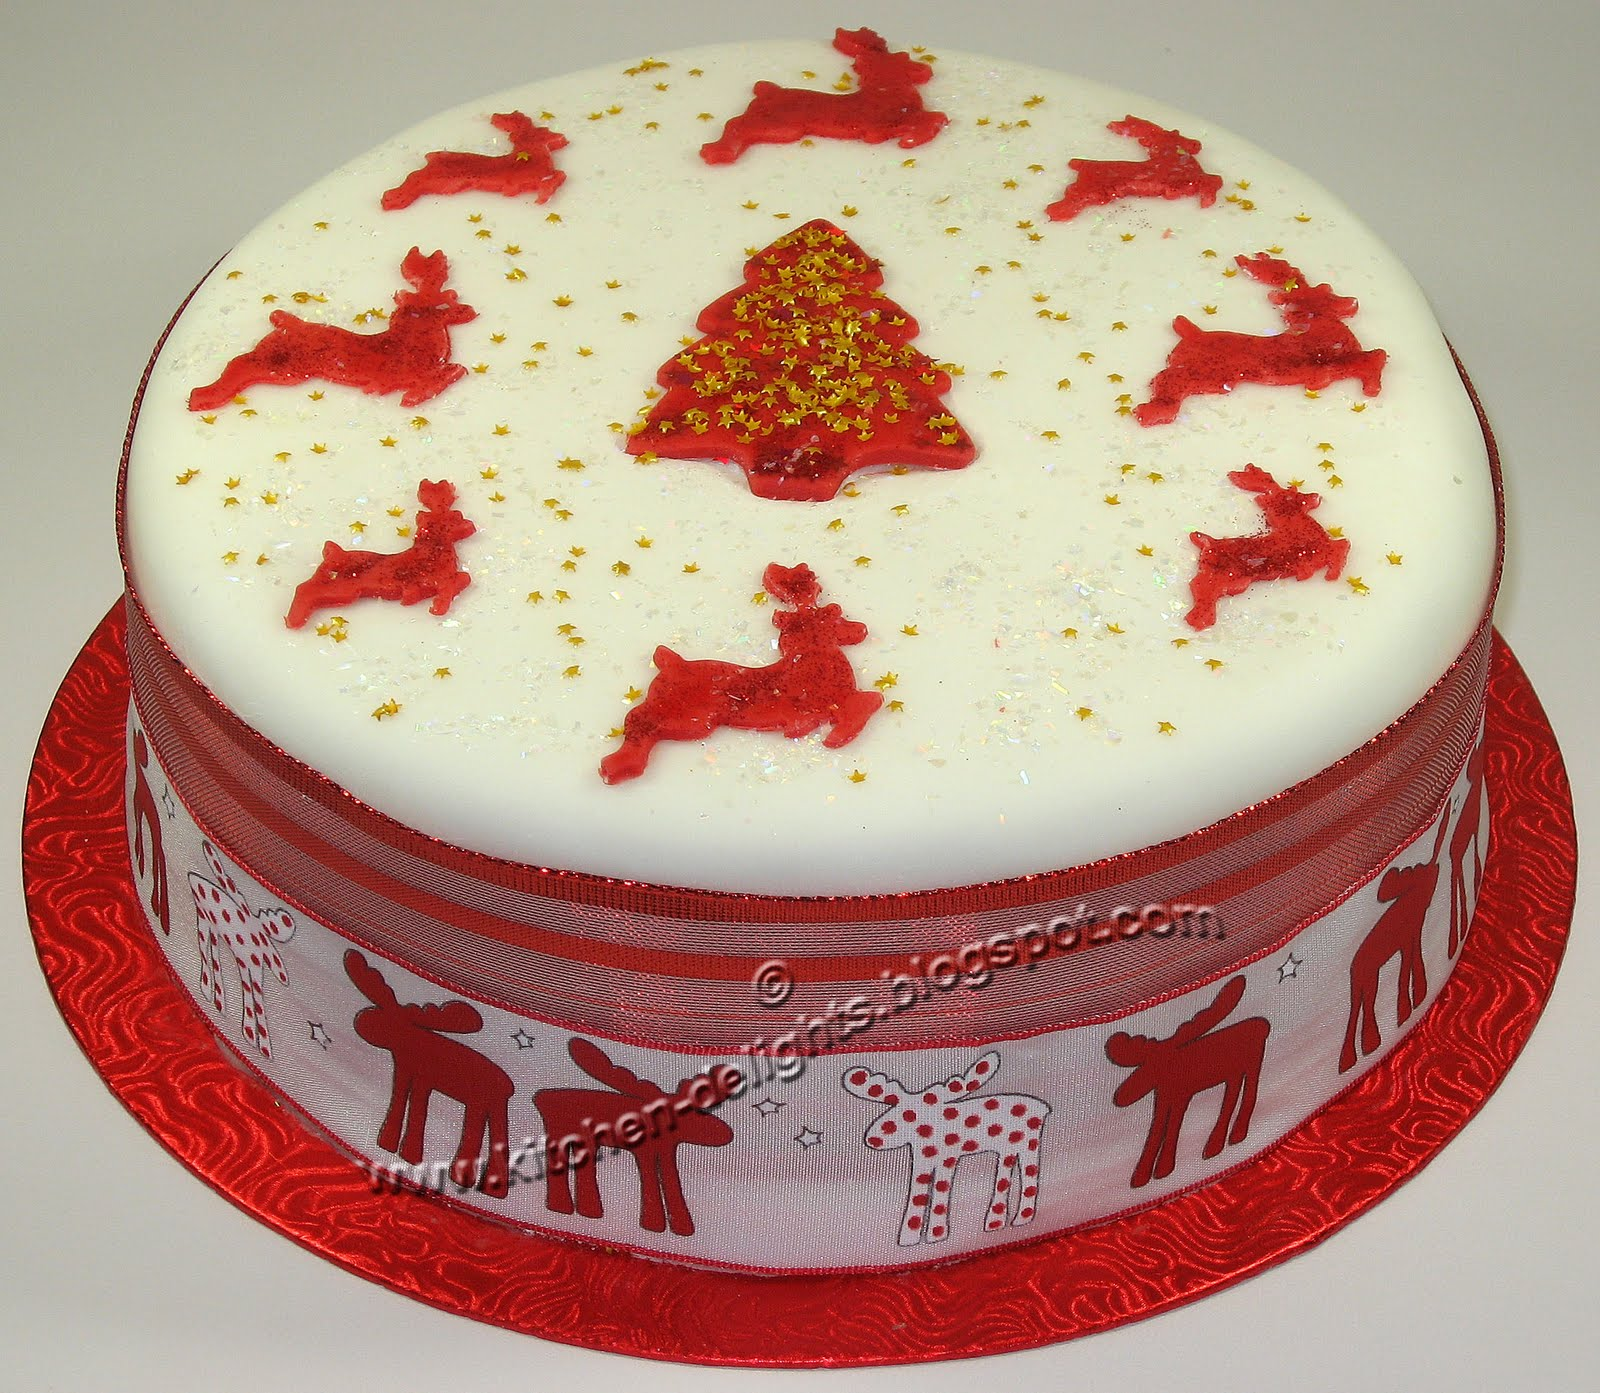 images of christmas cake - photo #44